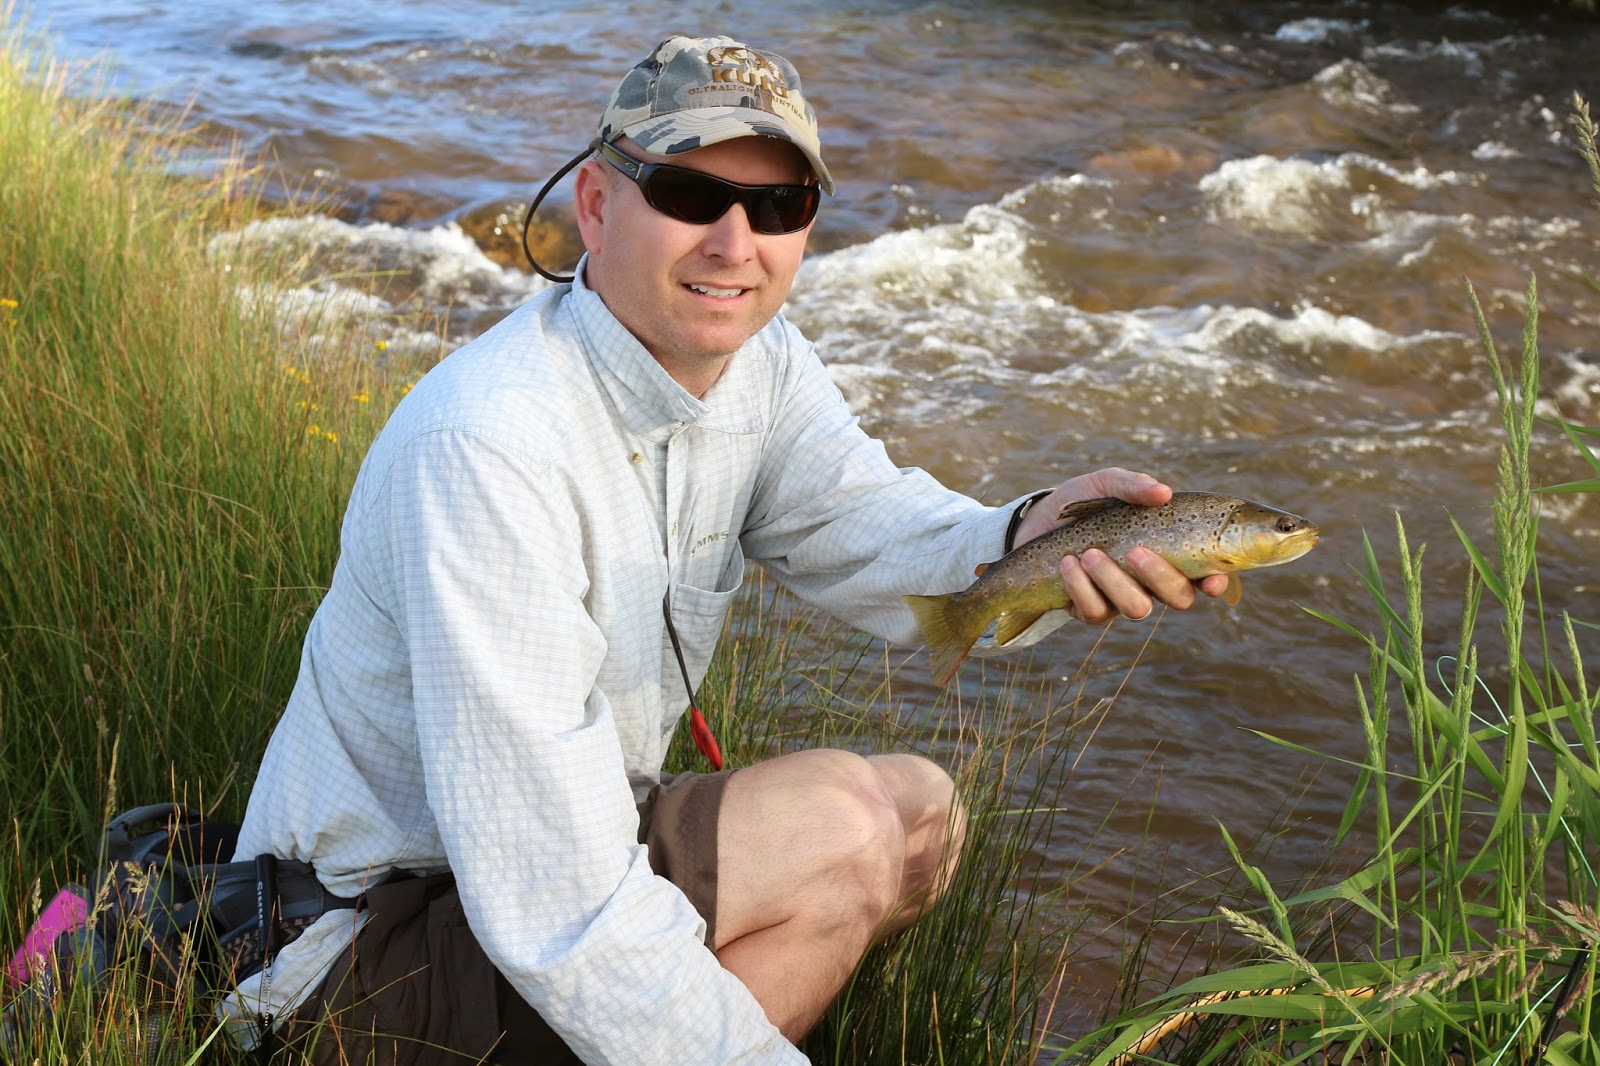 Fly+fish+the+Roaring+Fork+River+in+Colorado+with+Jay+Scott+Outdoors+4.JPG